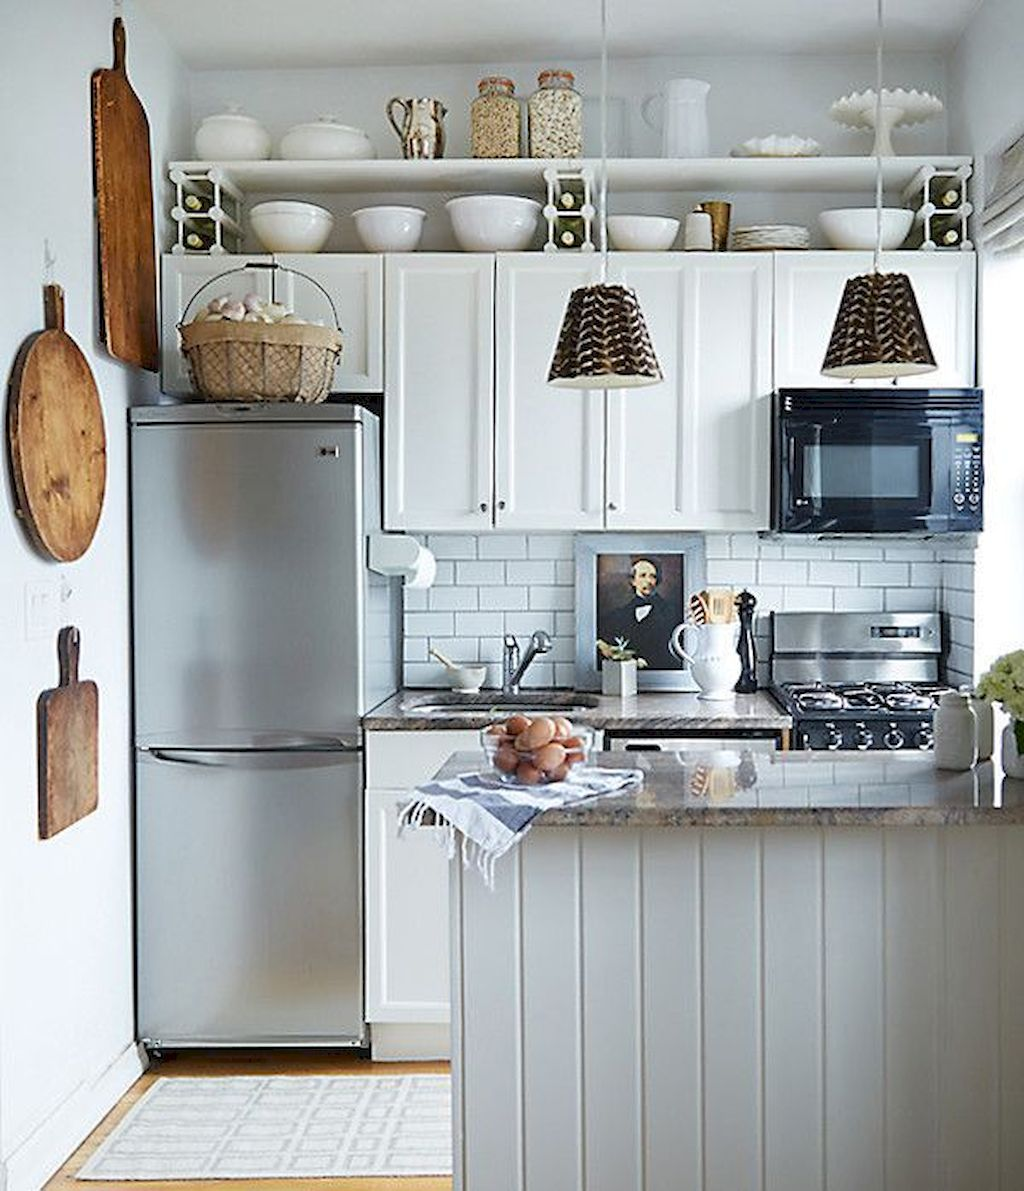 Kitchen Plan And Design For Small Room (124)